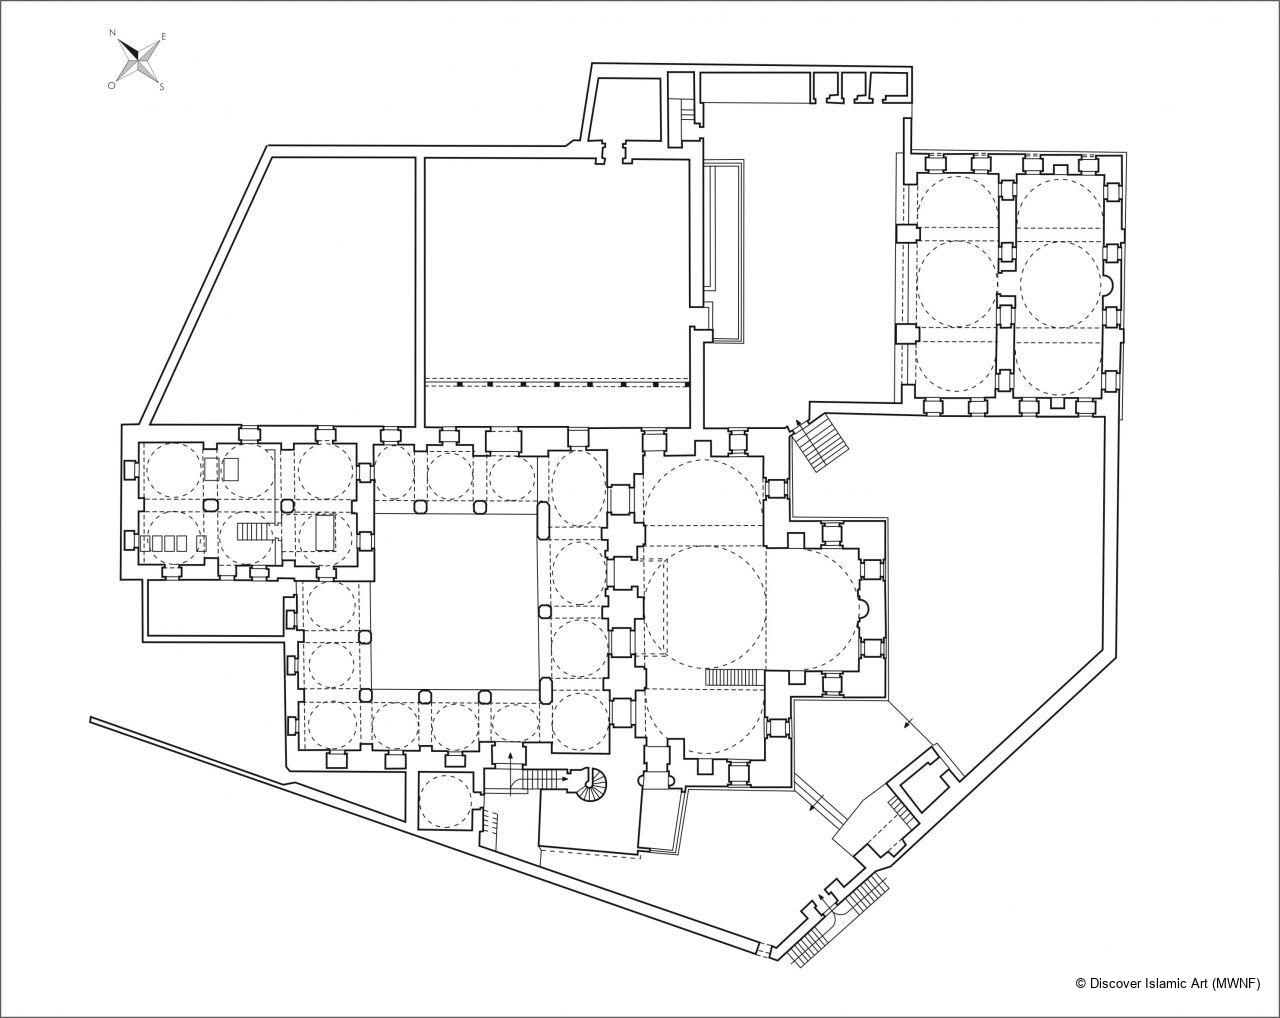 Mobile Home Plans Single Wides likewise 1980 Skyline Mobile Home Floor Plans furthermore Schult Manufactured Homes Photos Bestofhouse   Manufactured Homes Plans Photos Bestofhouse also photos Videos likewise 14x70 Mobile Home Floor Plan New Single Wide Mobile Homes Factory Expo Home Centers. on 14x70 mobile home floor plan